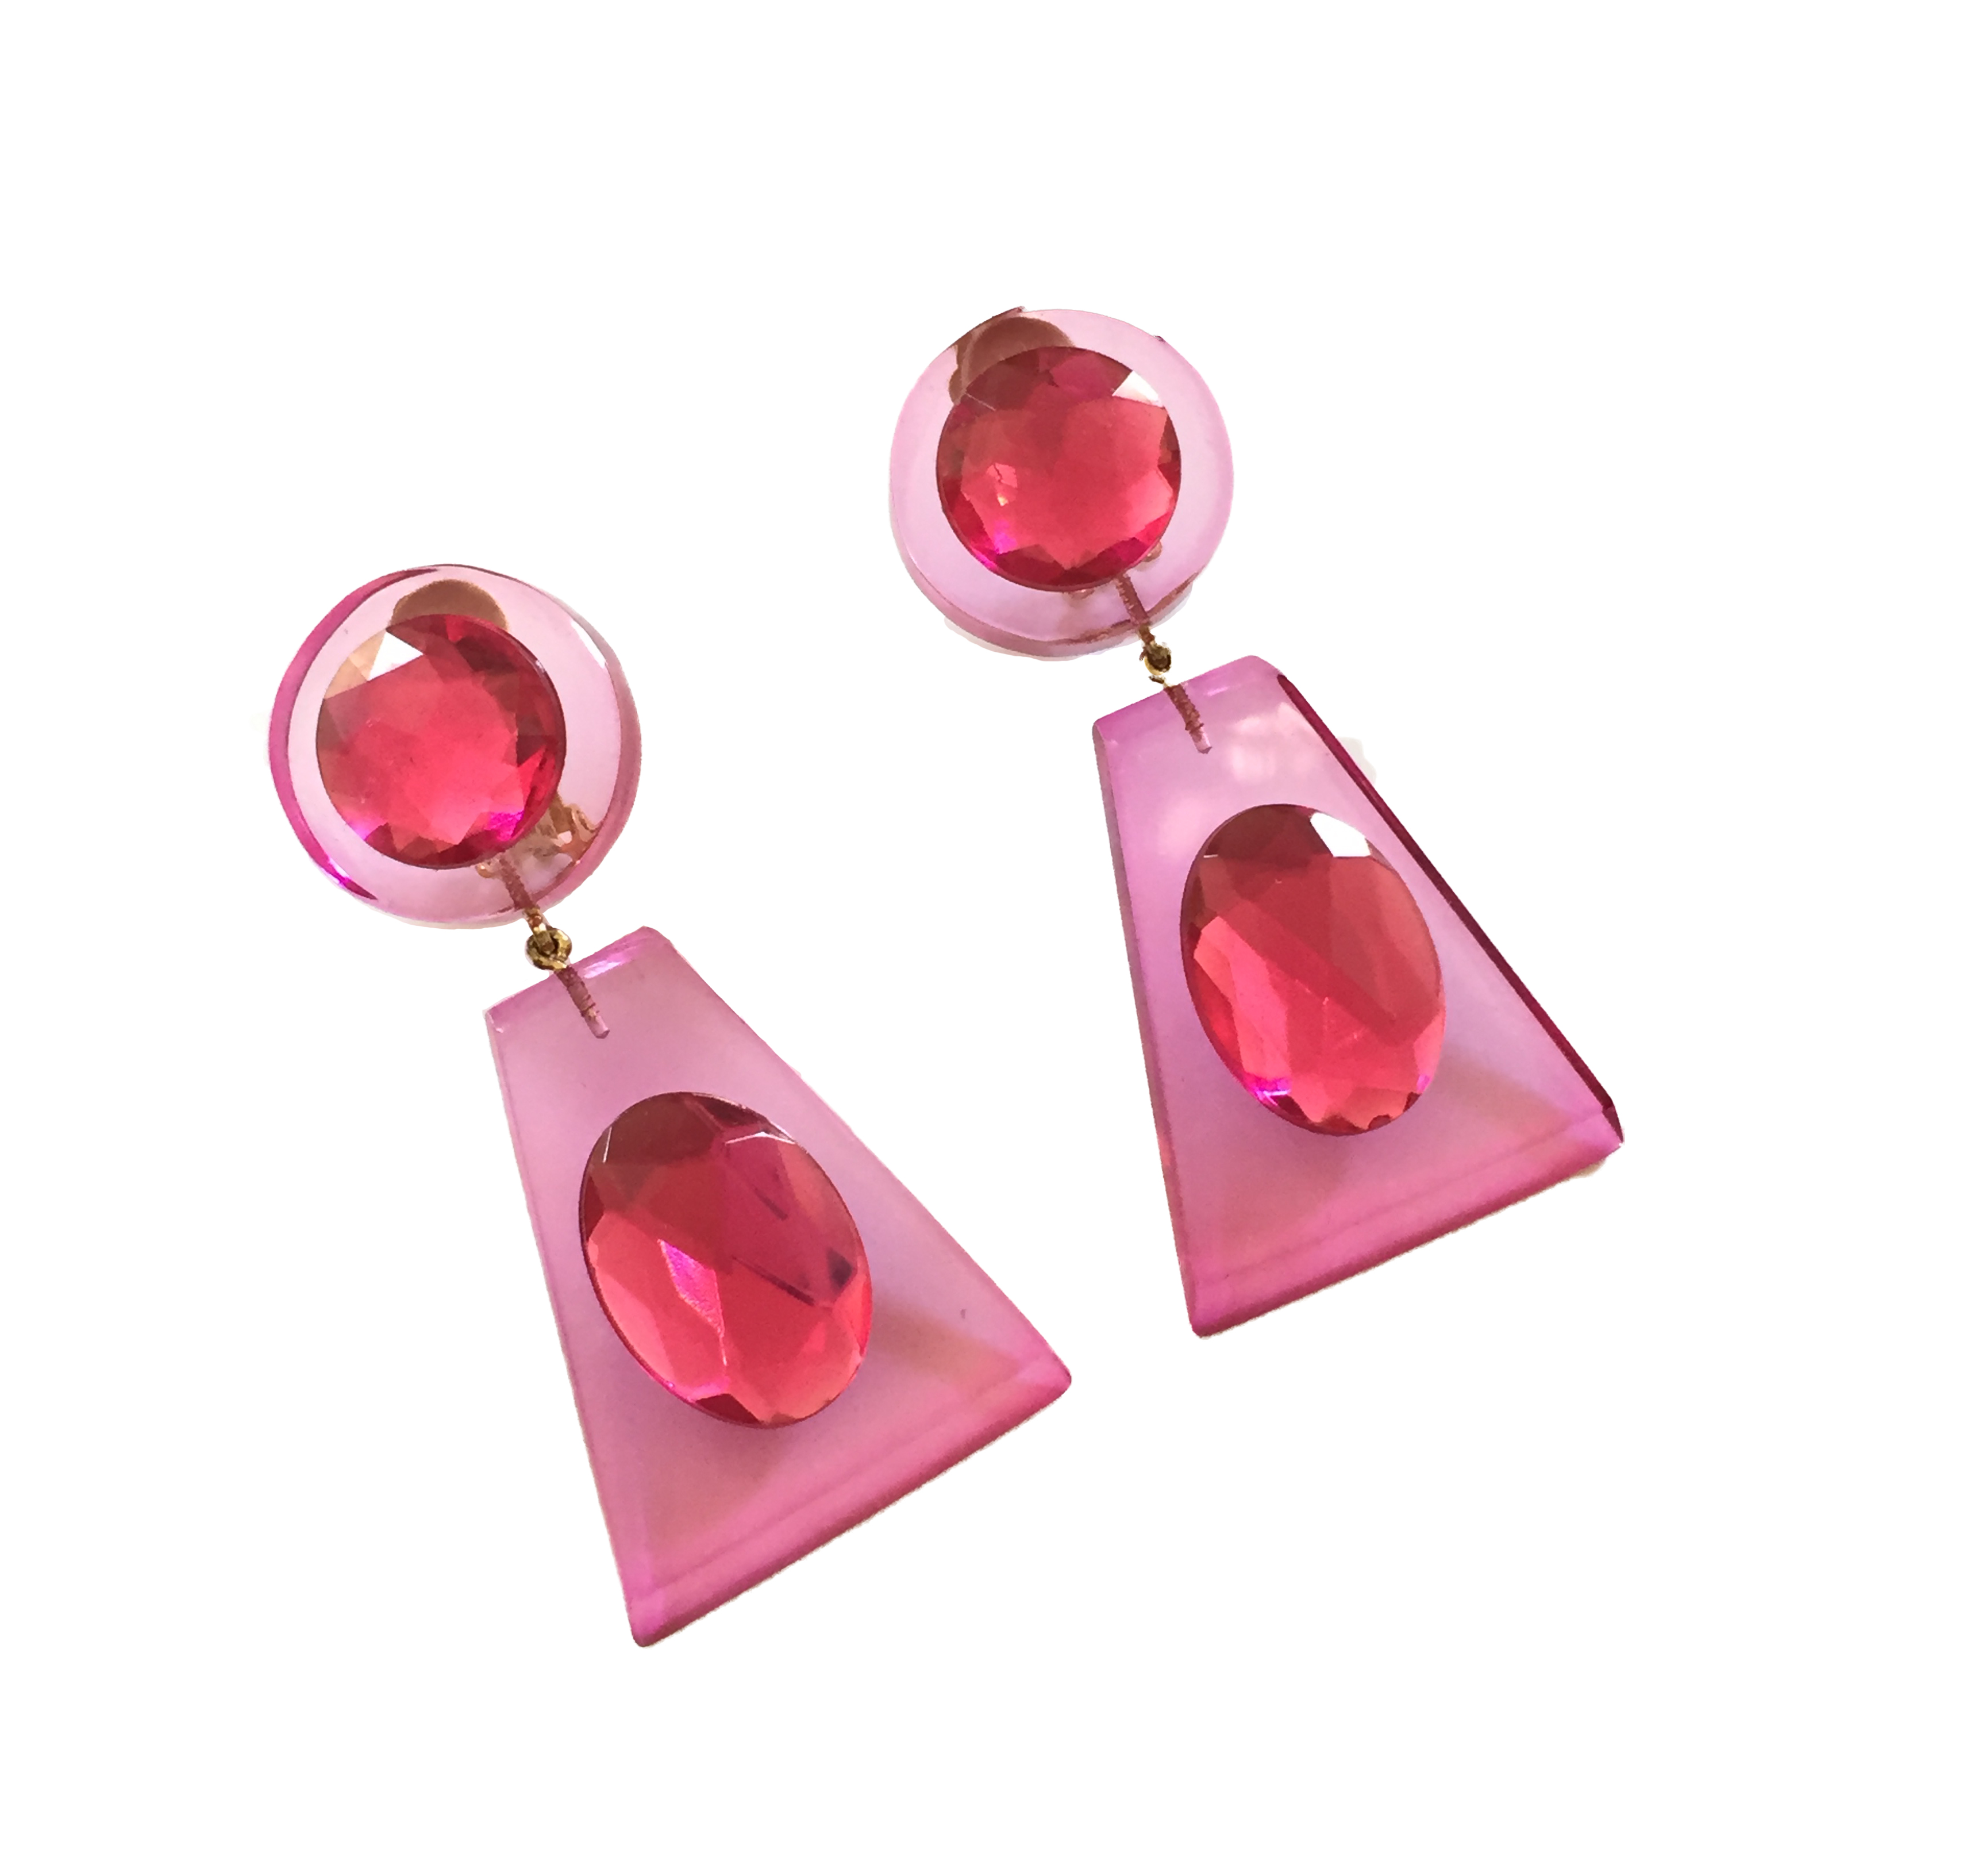 Judith Hendler Trapezoidal-shaped Drop Earrings with Faceted Resin Rhinestones